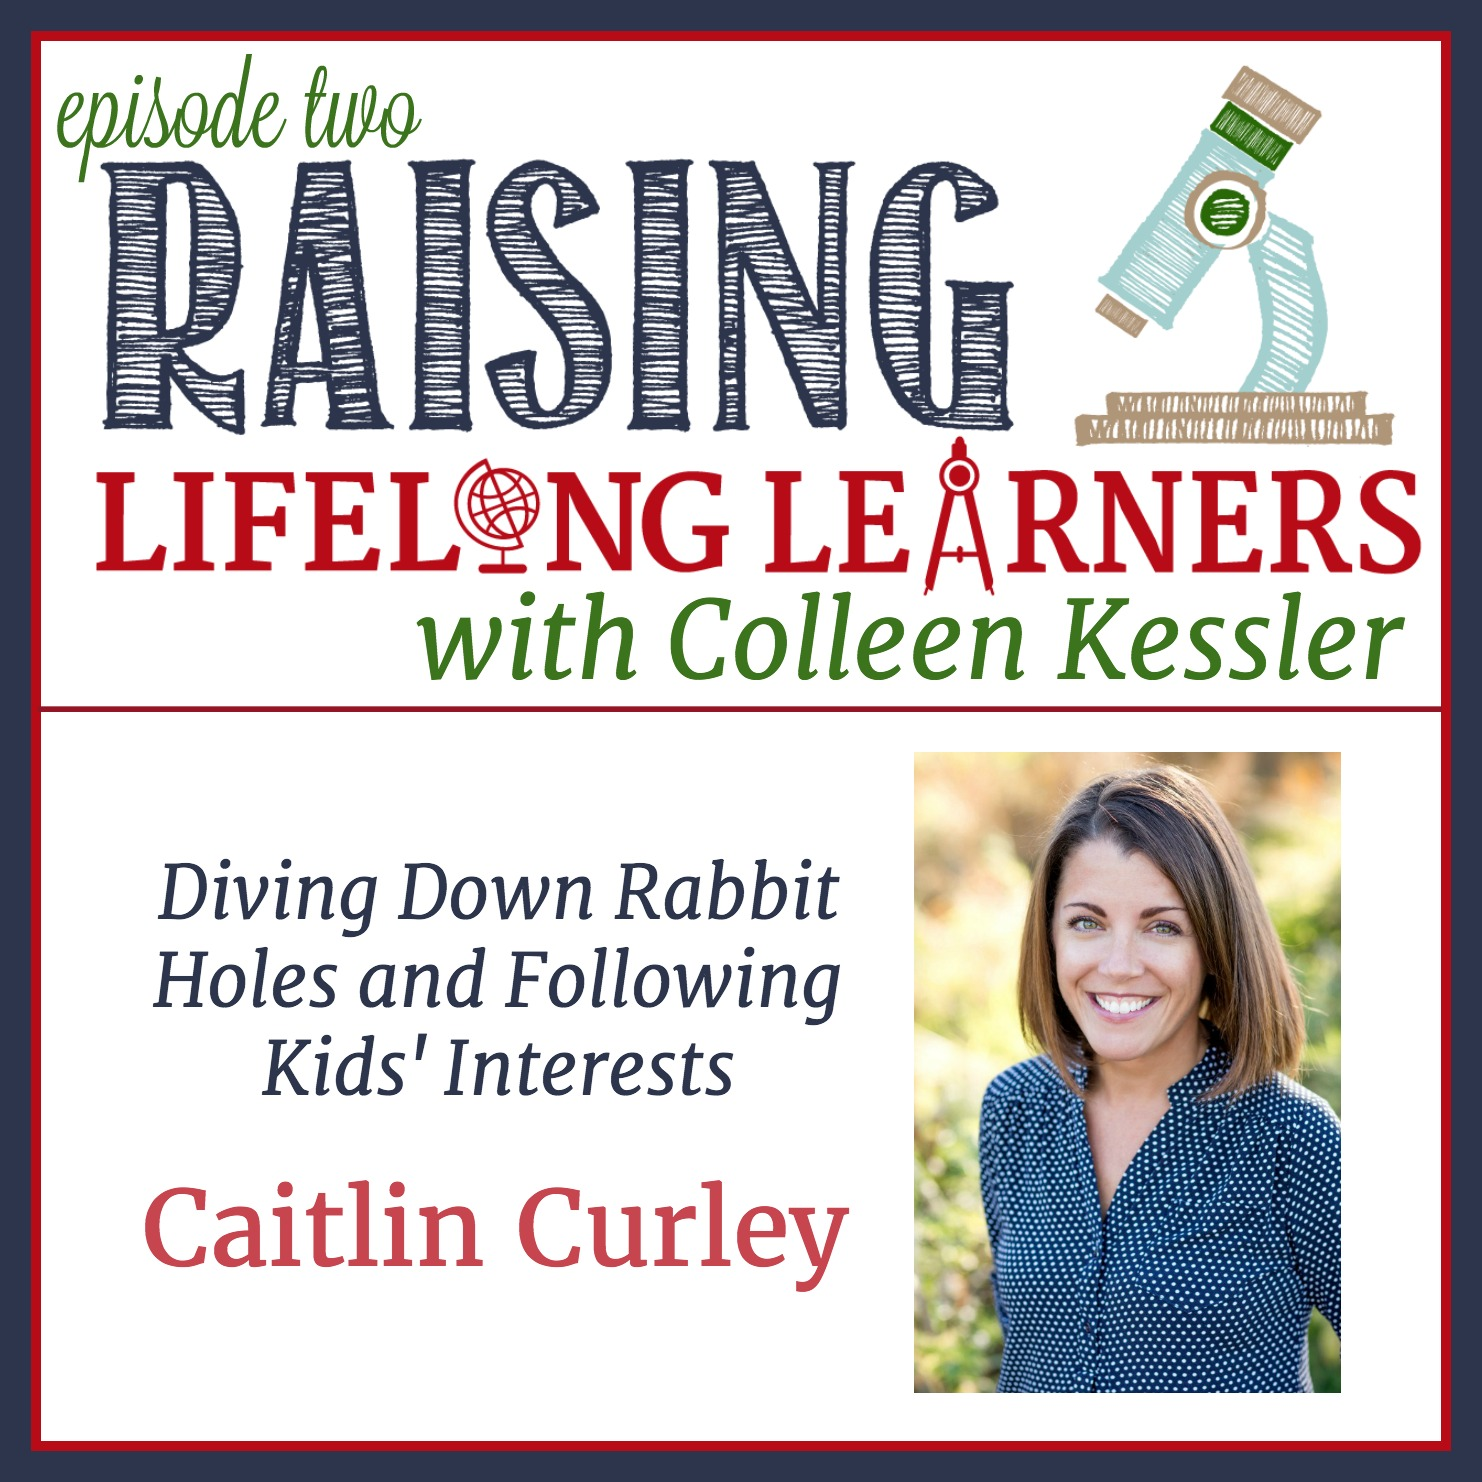 Raising Lifelong Learners Podcast Episode Two - Diving Down Rabbit Holes and Following Kids Interests